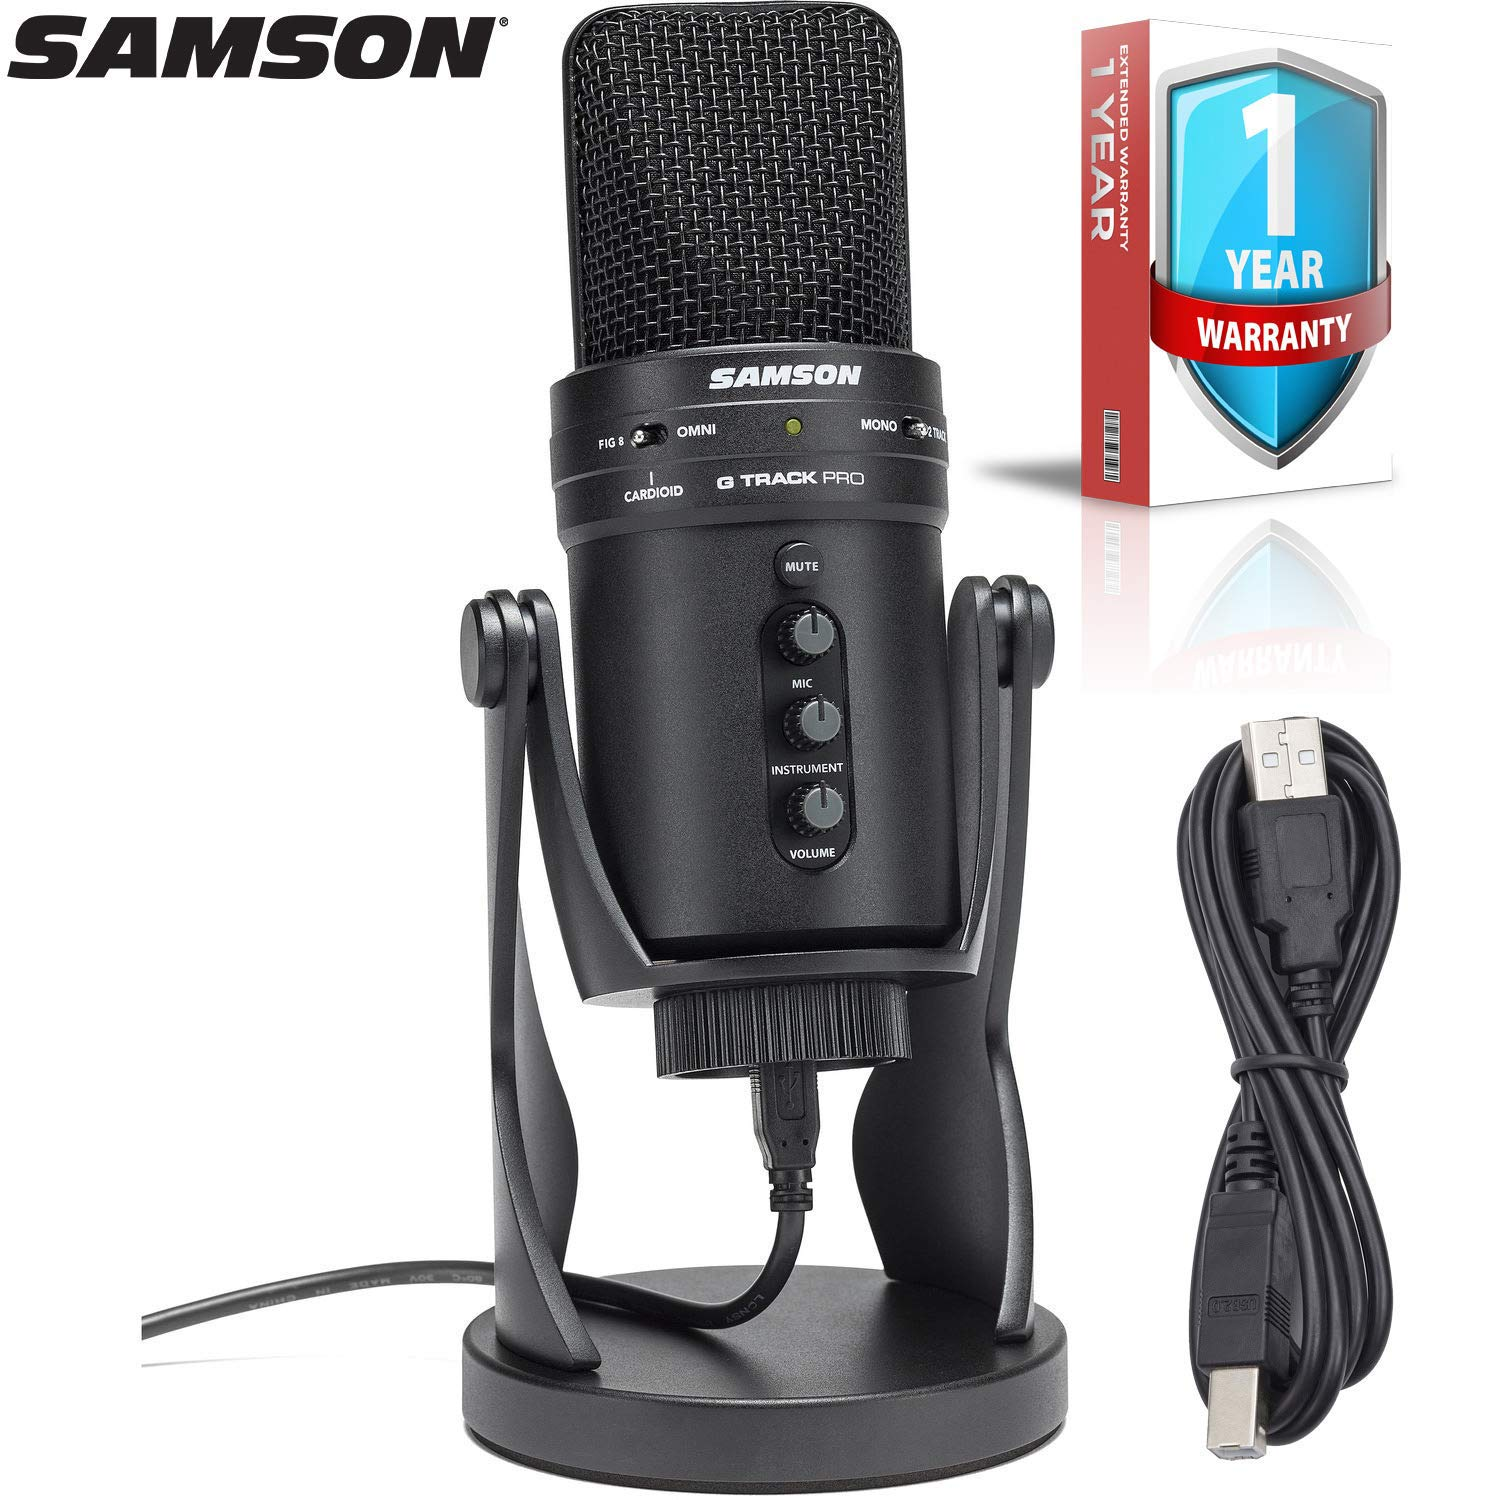 Black Samson G-Track Pro Multi-Pattern USB Condenser Studio Microphone with Built-in Audio Interface with 1-Year Extended Warranty